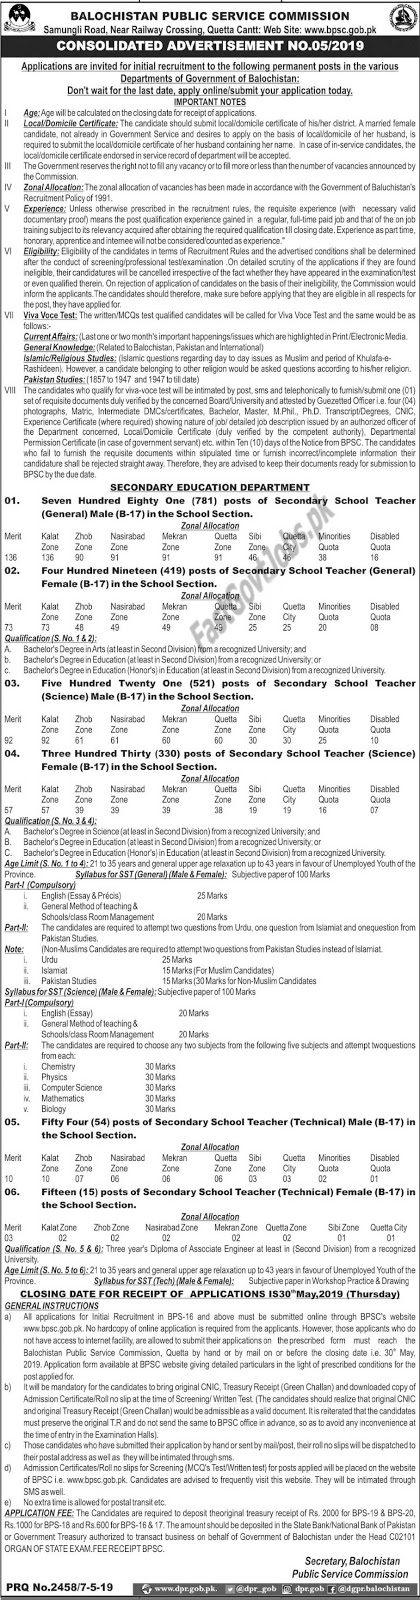 Educator jobs 2019 by BPSC | 2120+ Teaching Vacancies | Secondary School Teachers